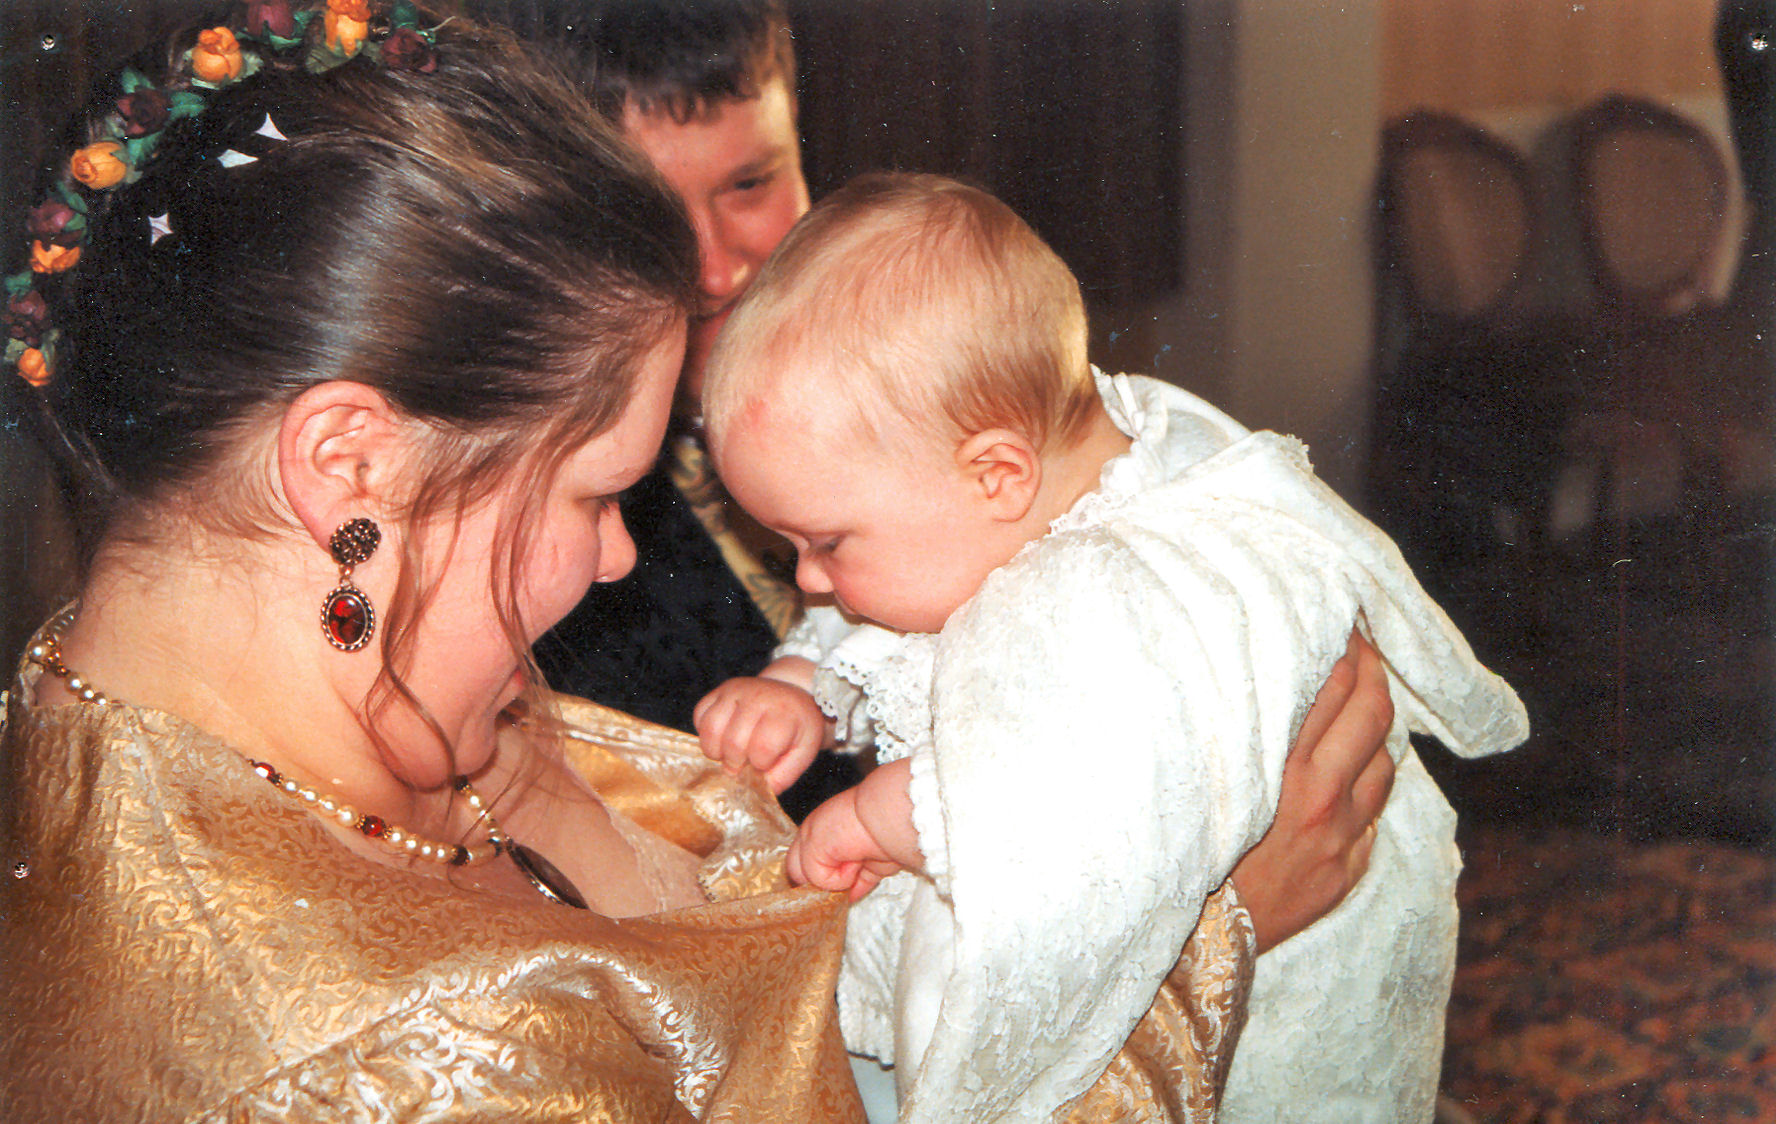 A joint wedding and christening in 1999, when young Jacob decided to check out Lisa's underpinnings !